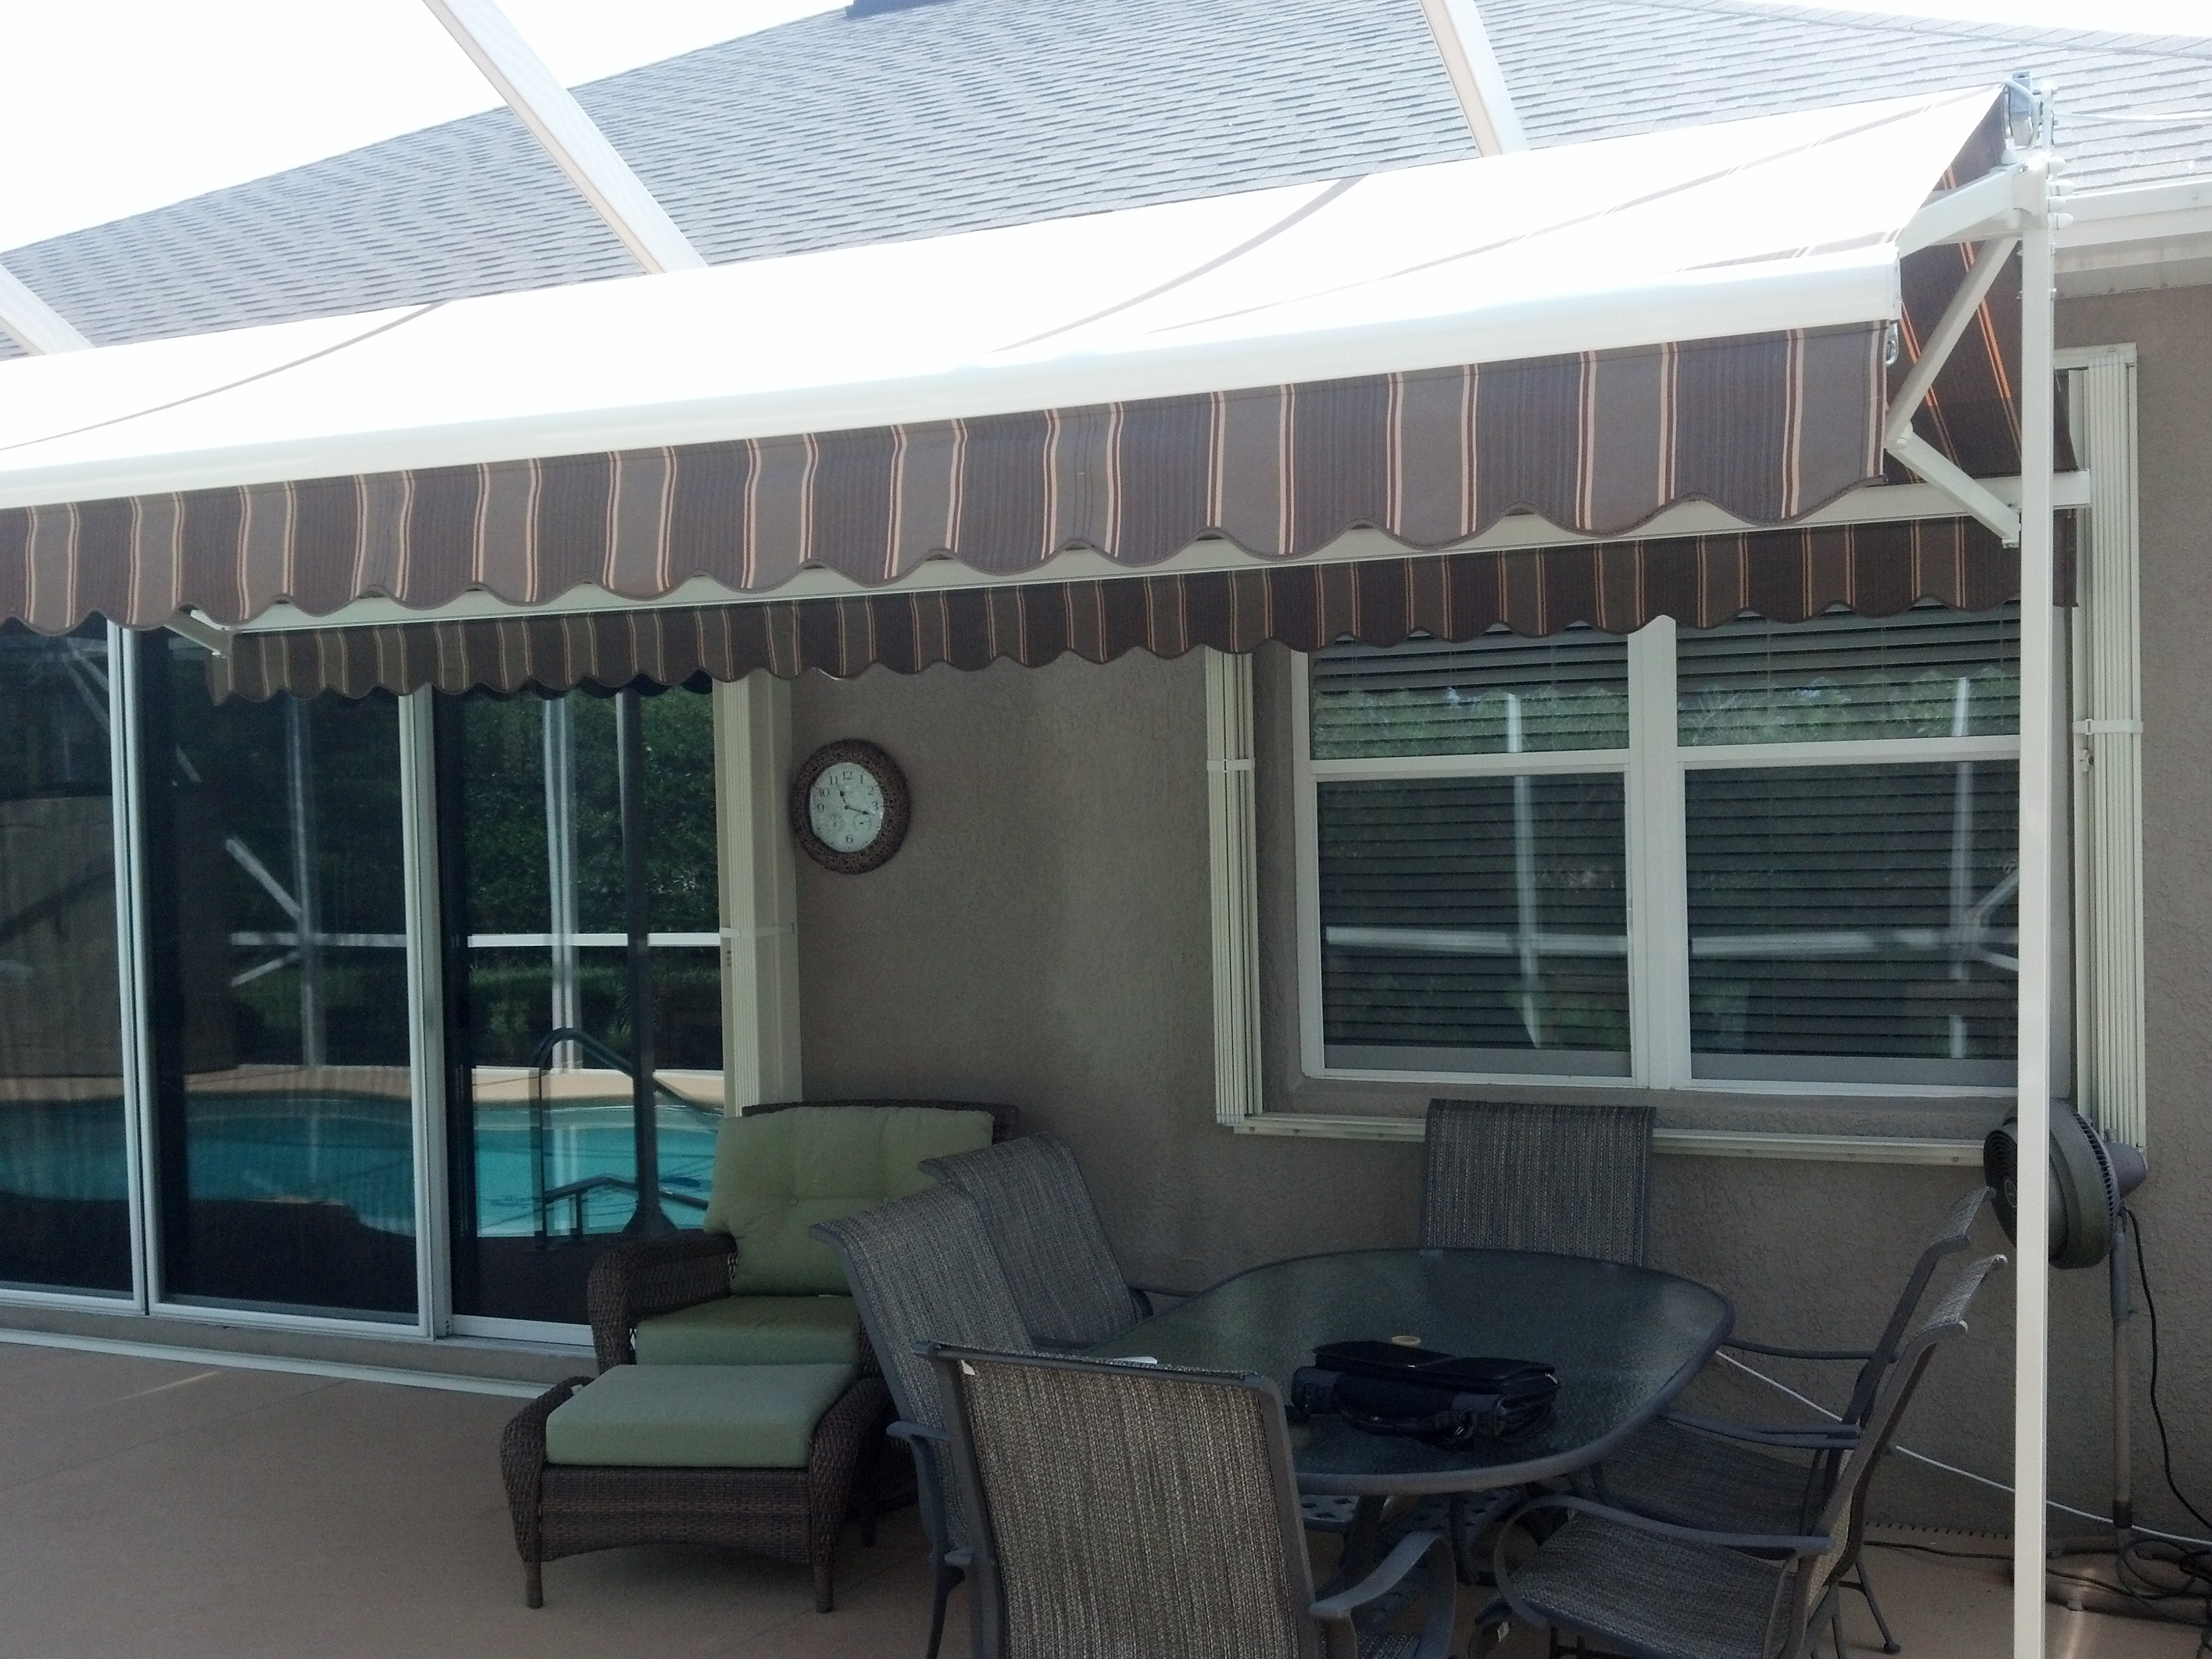 madklubben awnings awning morized info malibu reviews motorized sunsetter euro oasis freestanding vlx mat